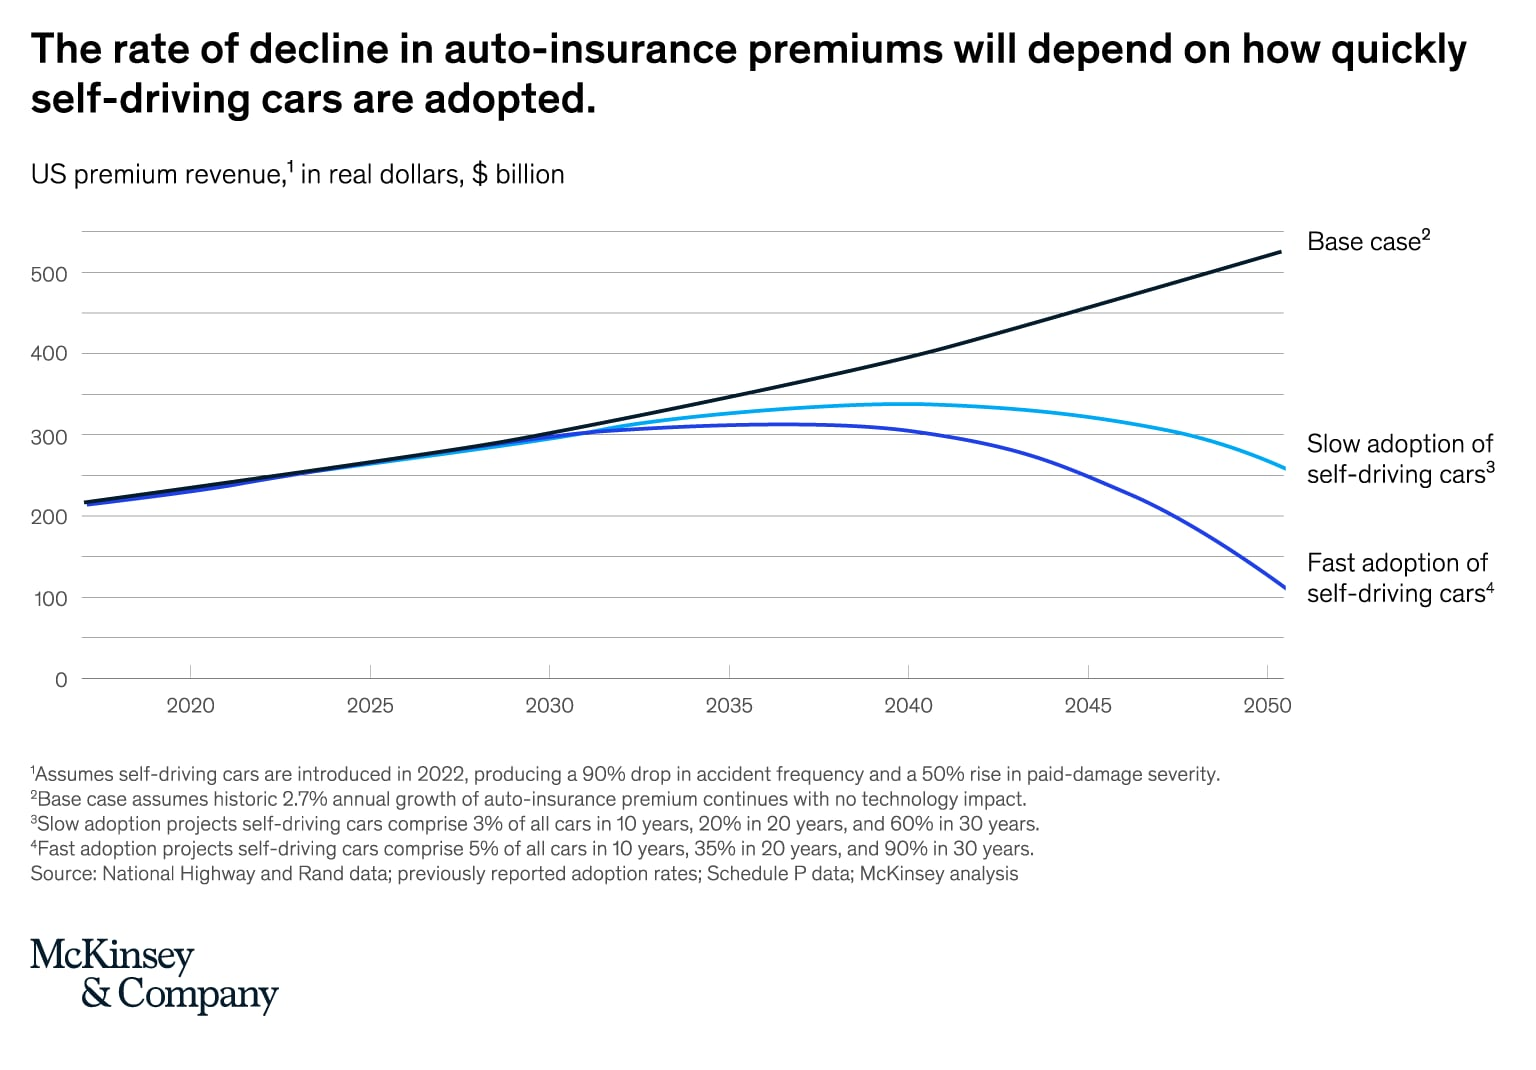 The rate of decline in auto-insurance premiums will depend on how quickly self-driving cars are adopted.